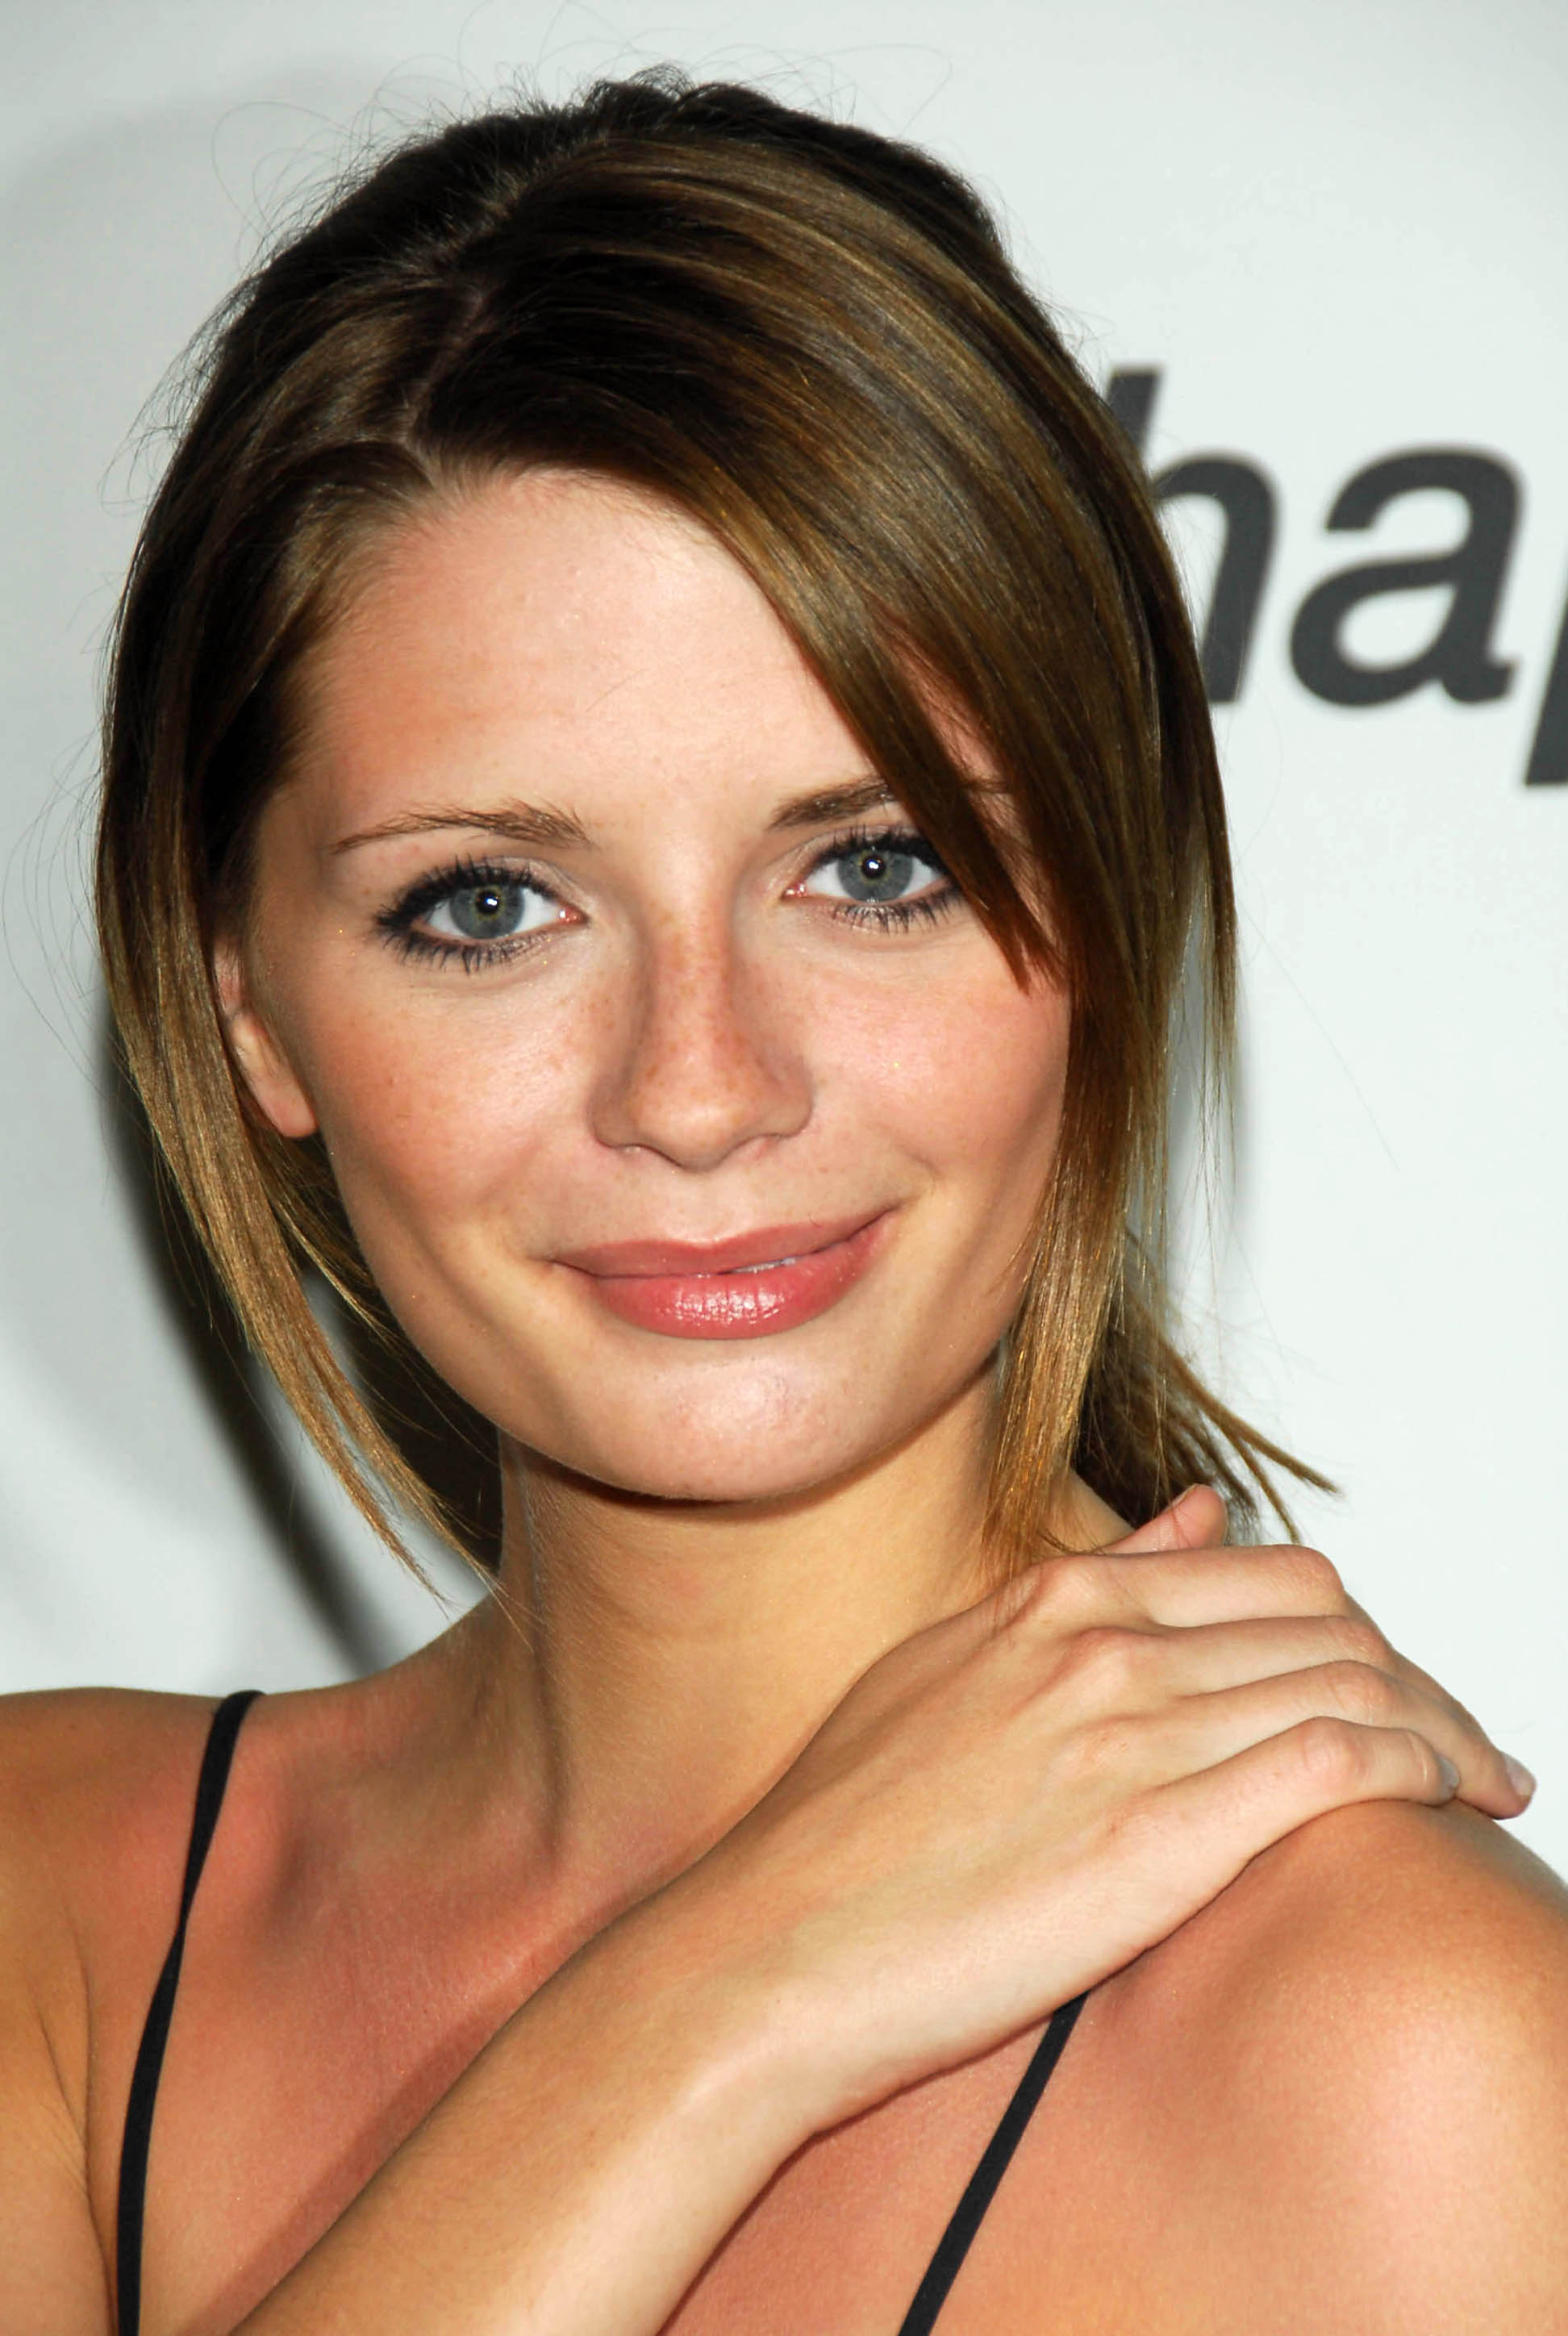 barton dating site After spending a single life now mischa barton dating in 2016 with new love boyfriend but not married to that why now one claim husband of this pretty lady partner.